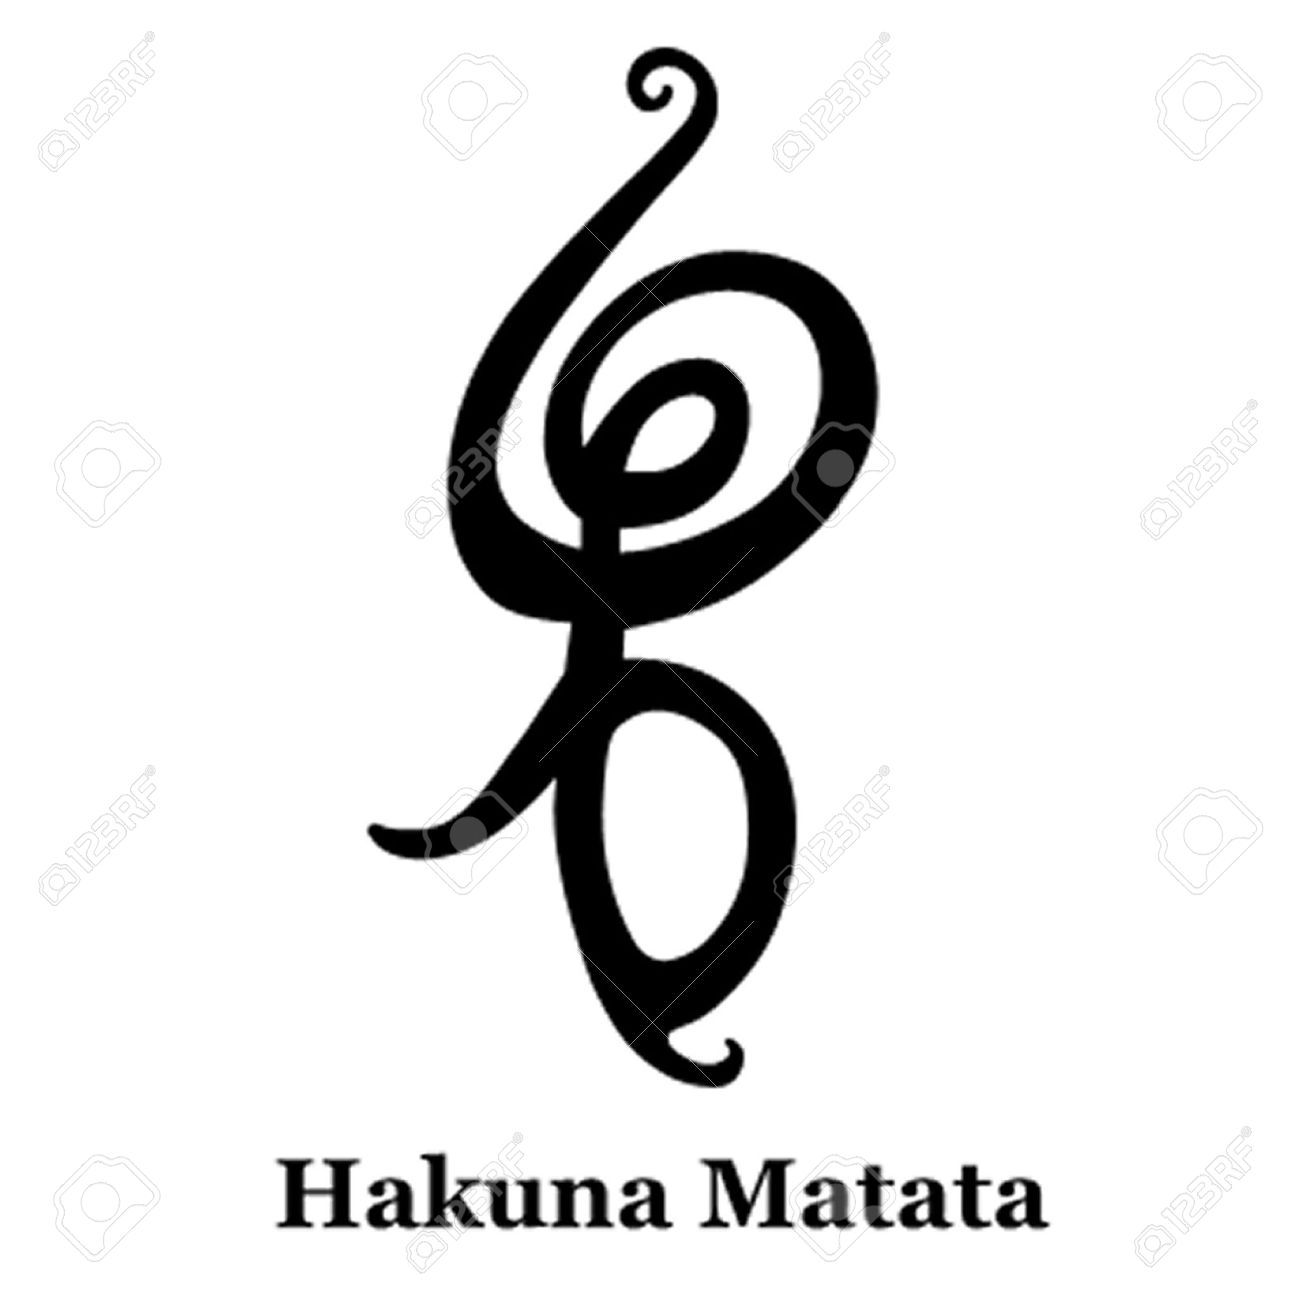 hakuna matata symbol no worries for the rest of your. Black Bedroom Furniture Sets. Home Design Ideas